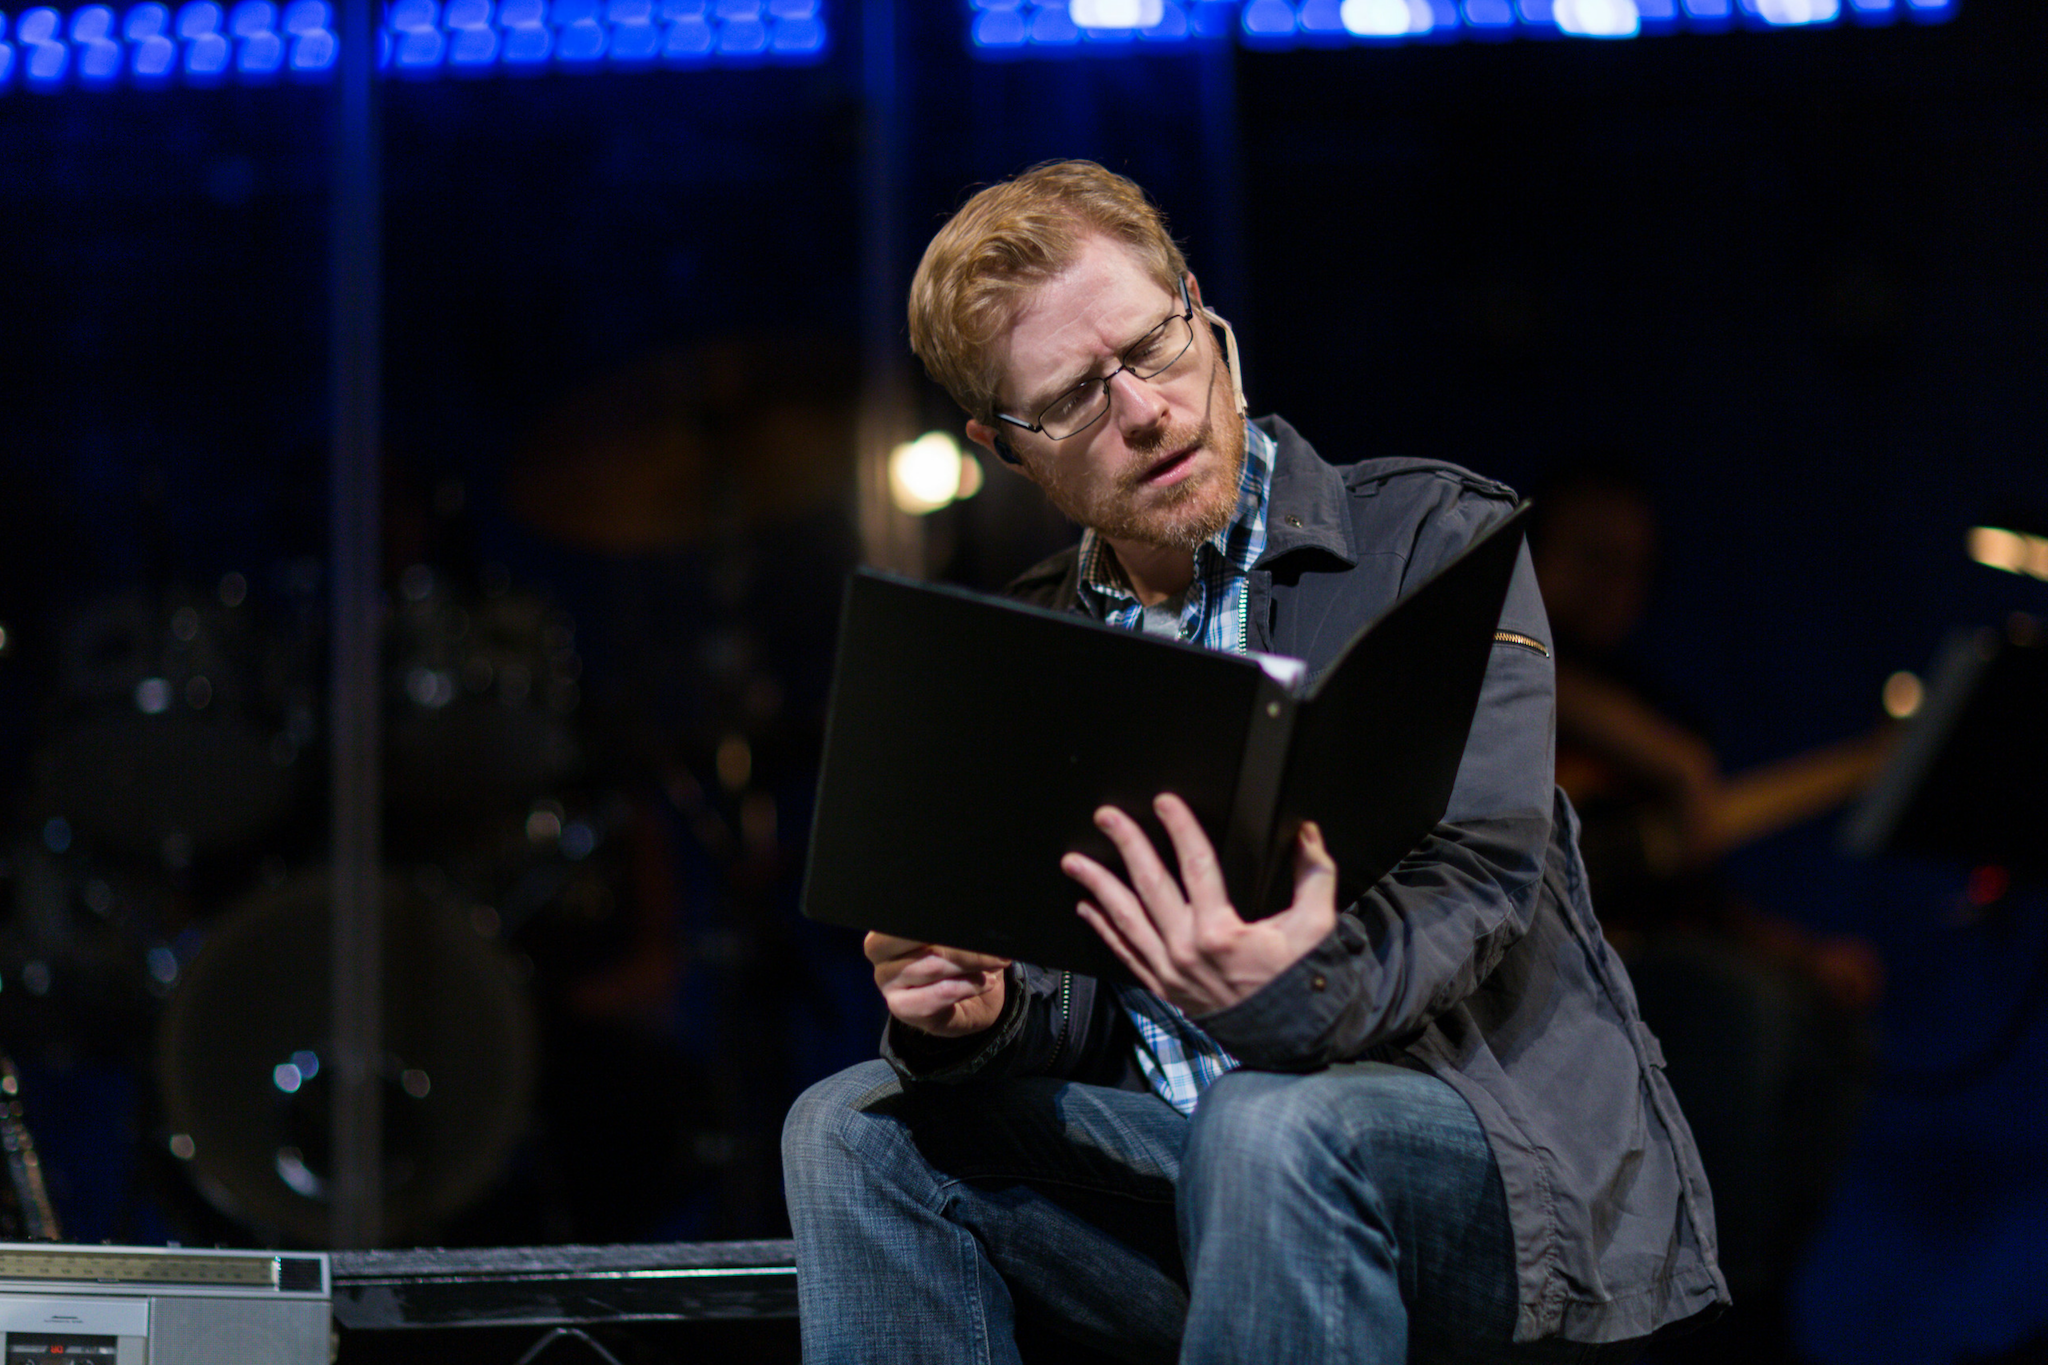 Anthony Rapp in Without You, 2015